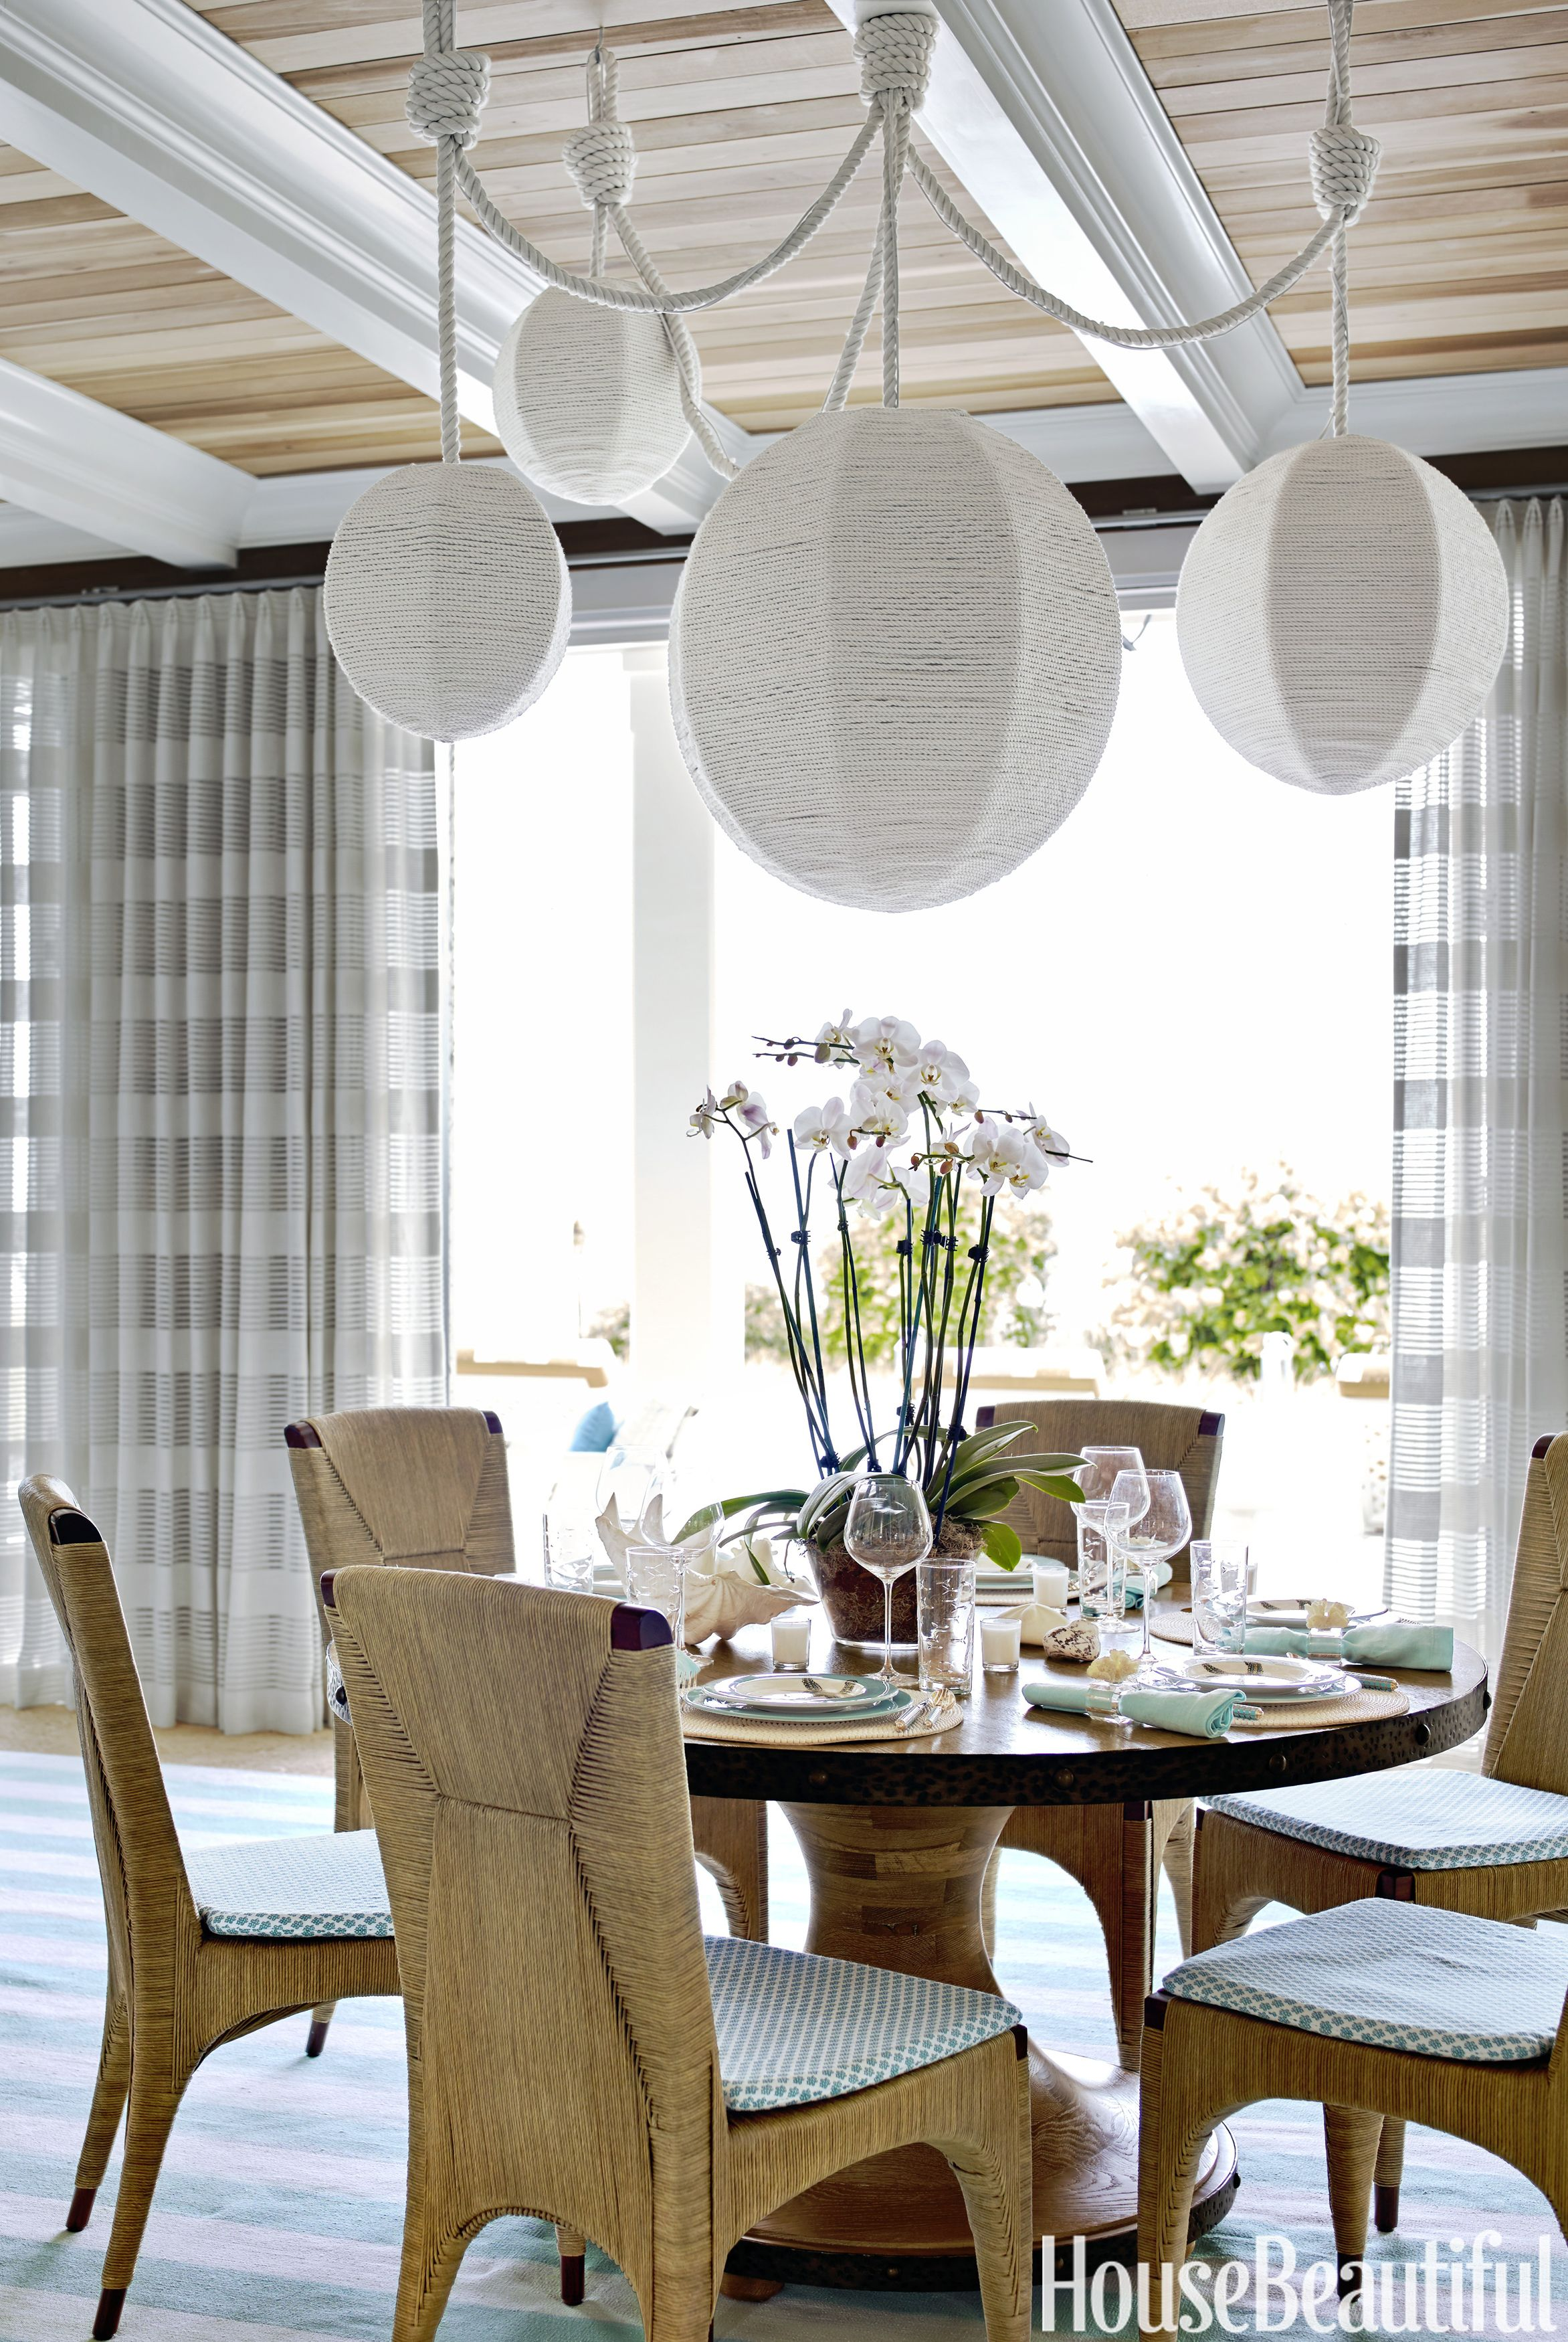 In The Dining Area, A Sedgwick U0026 Brattle Rope Wrapped Chandelier Hangs Over  A